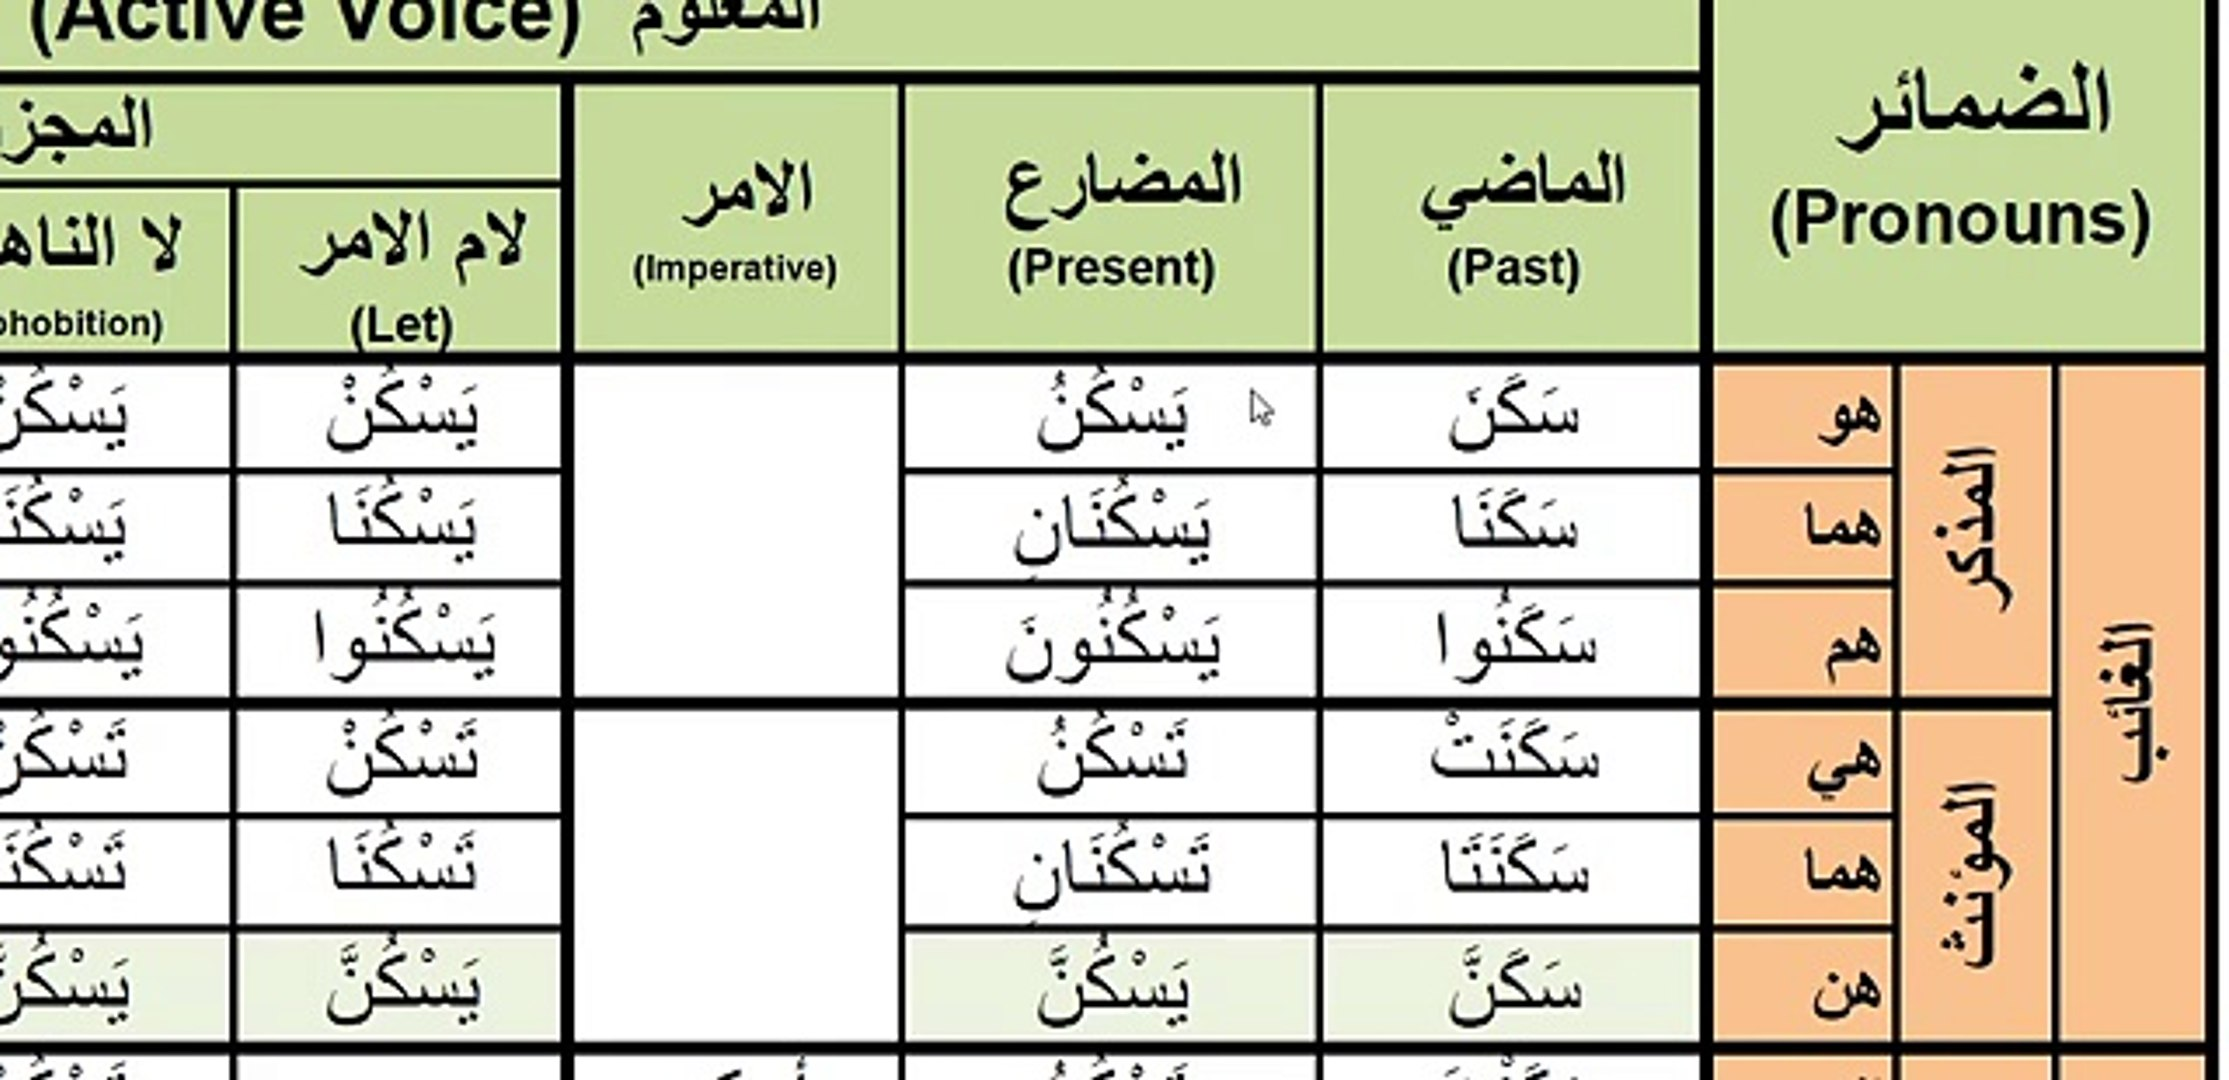 Arabic Verbs - 0048 sakana (to reside) سكن active voice past present and  imperative